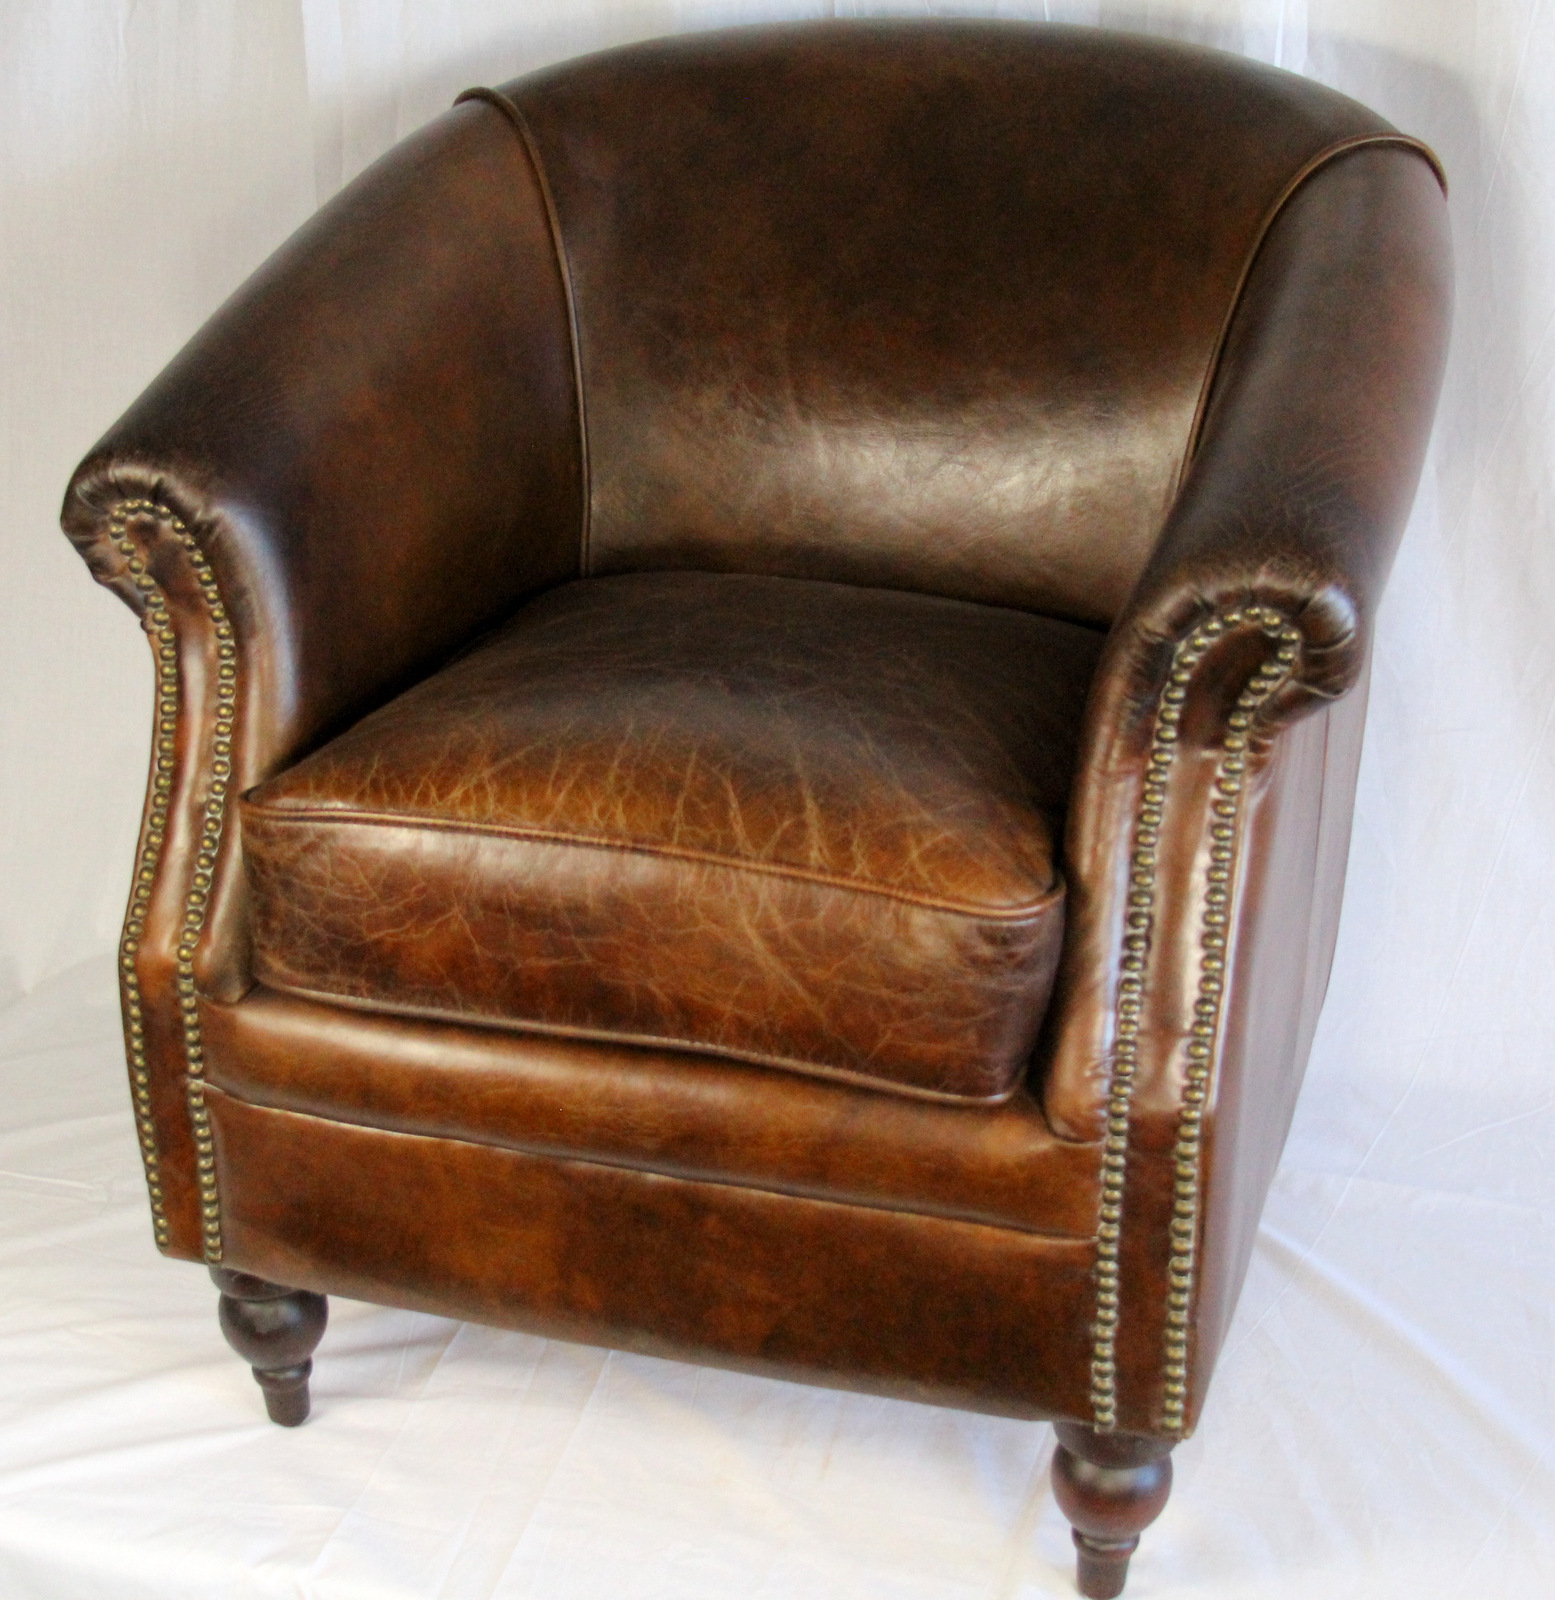 Ebay Used Chairs Real Leather Club Chair Prairie Perch Let 39s Go A Sourcing